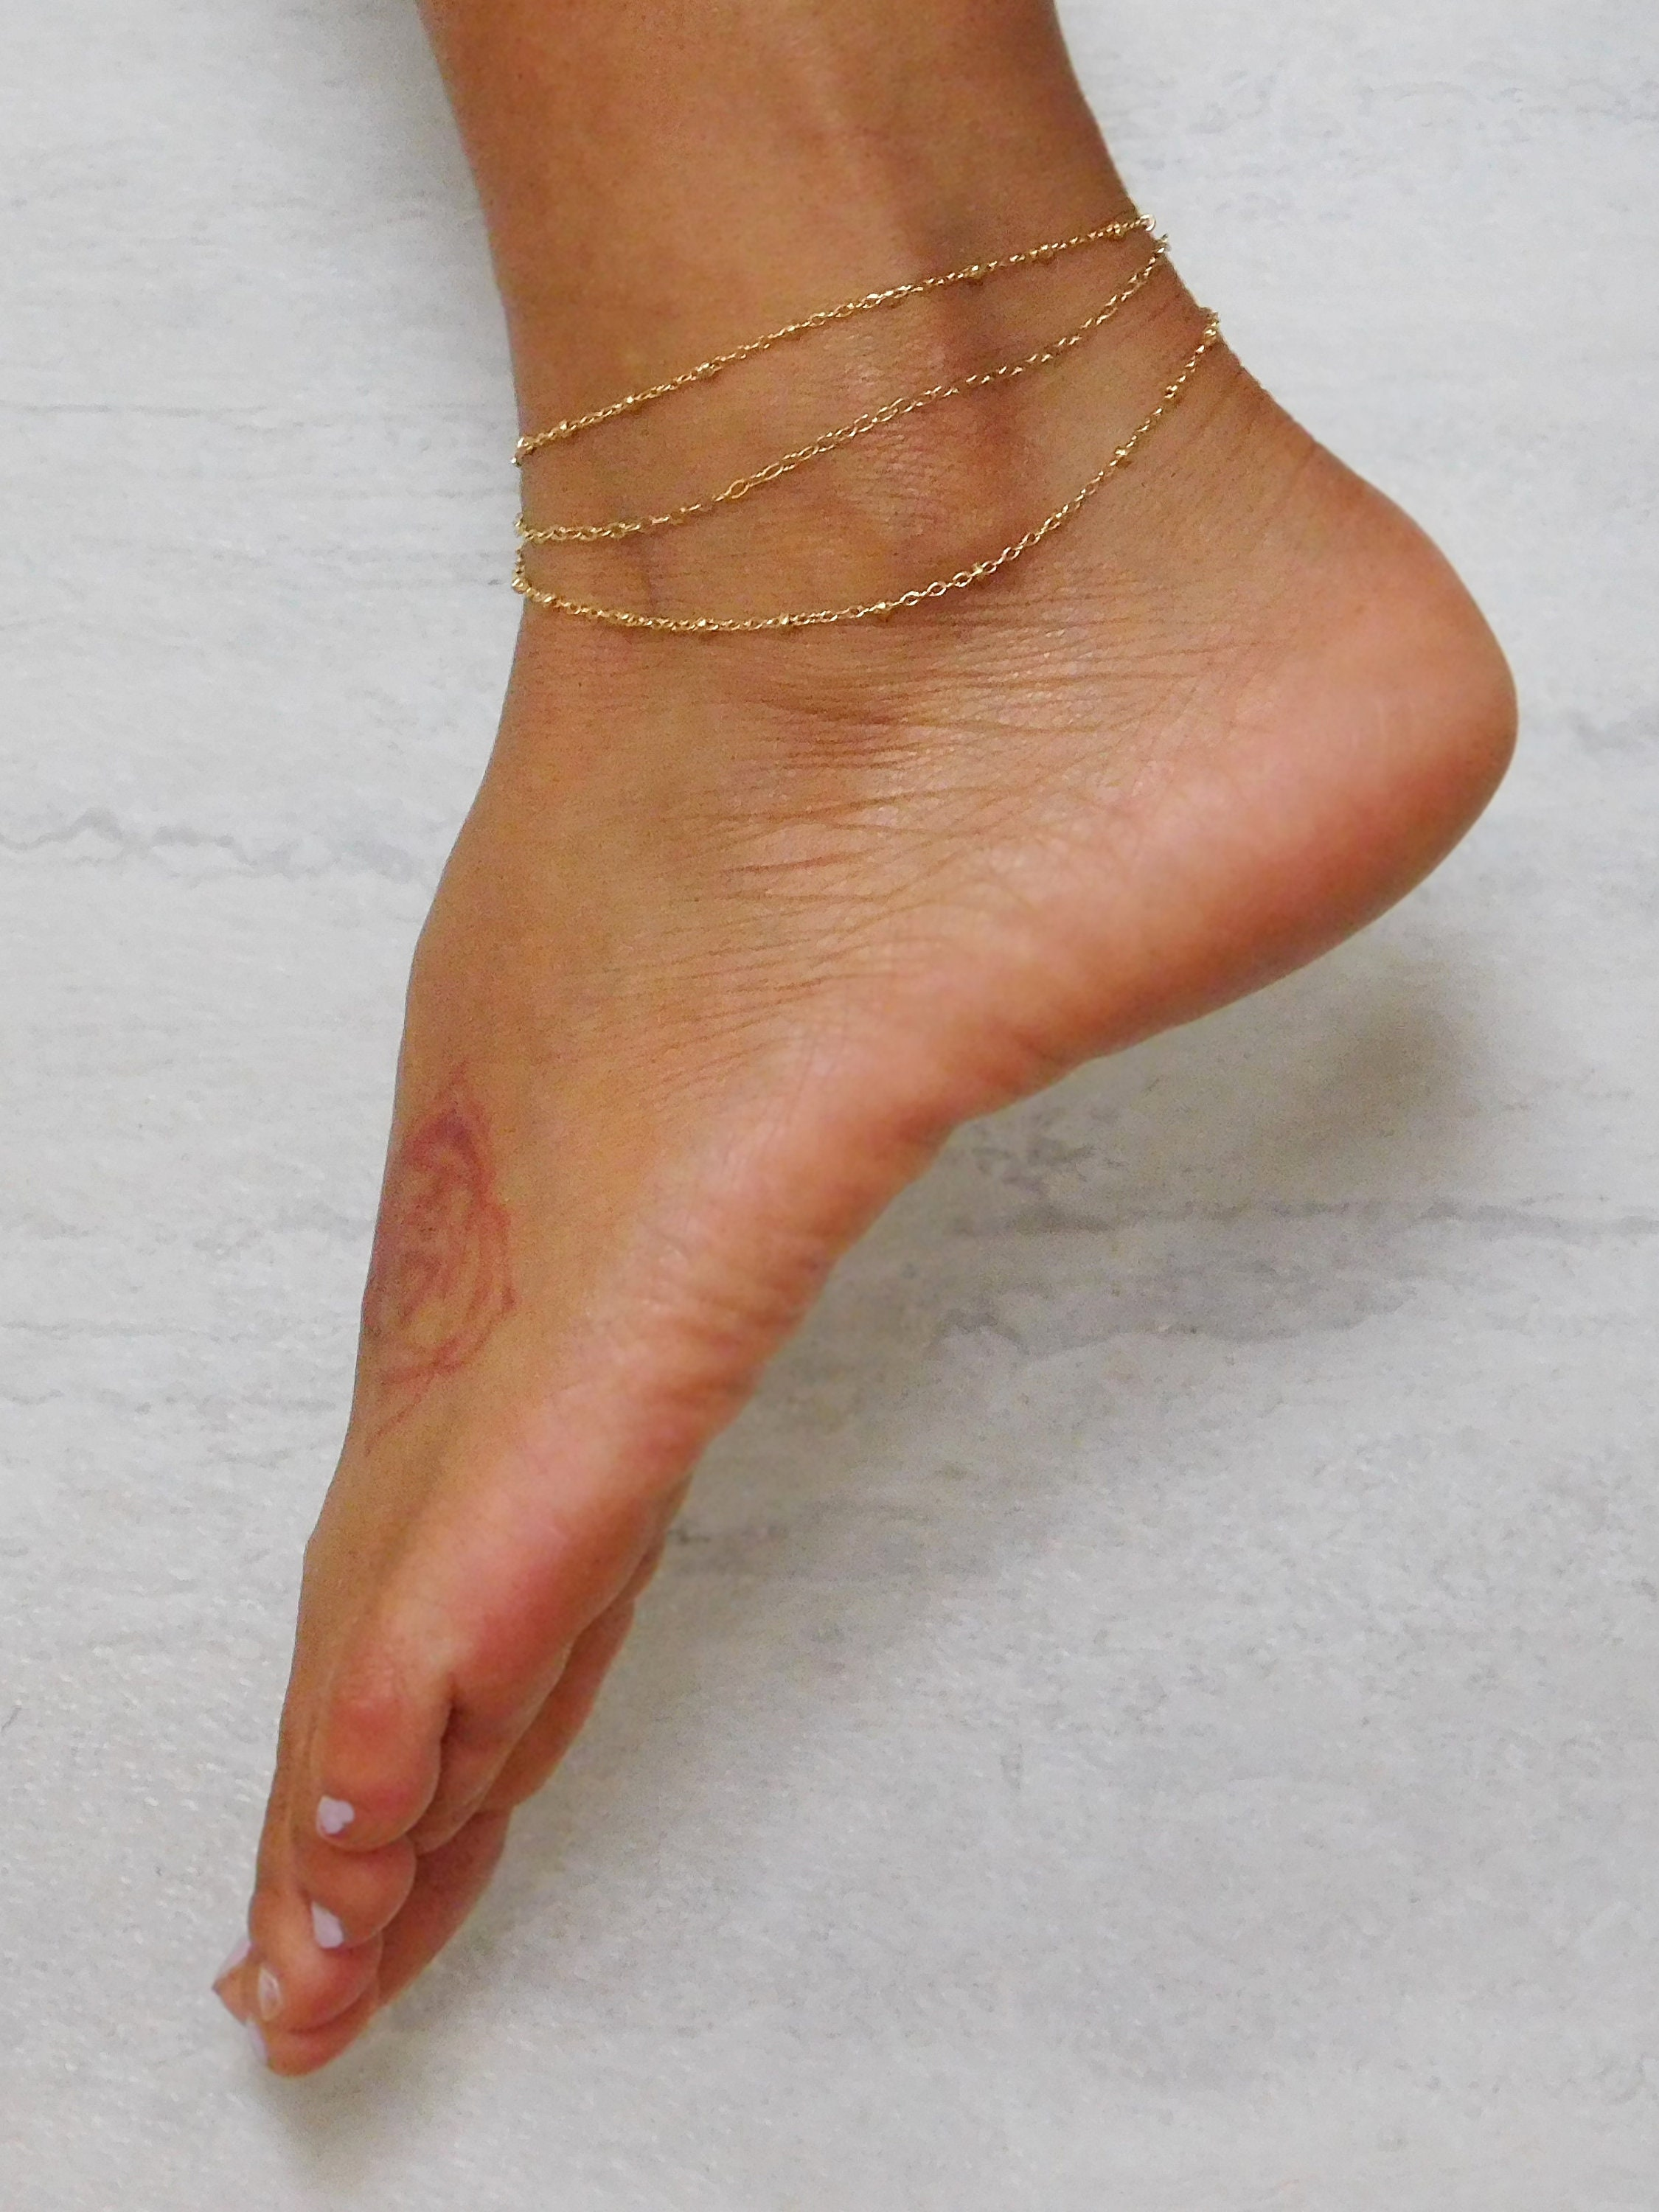 ankle elegant chain gold bracelet chaine jewellery bracelets patterns sandals for beaded oblacoder anklet womens barefoot foot women anklets silver cheville